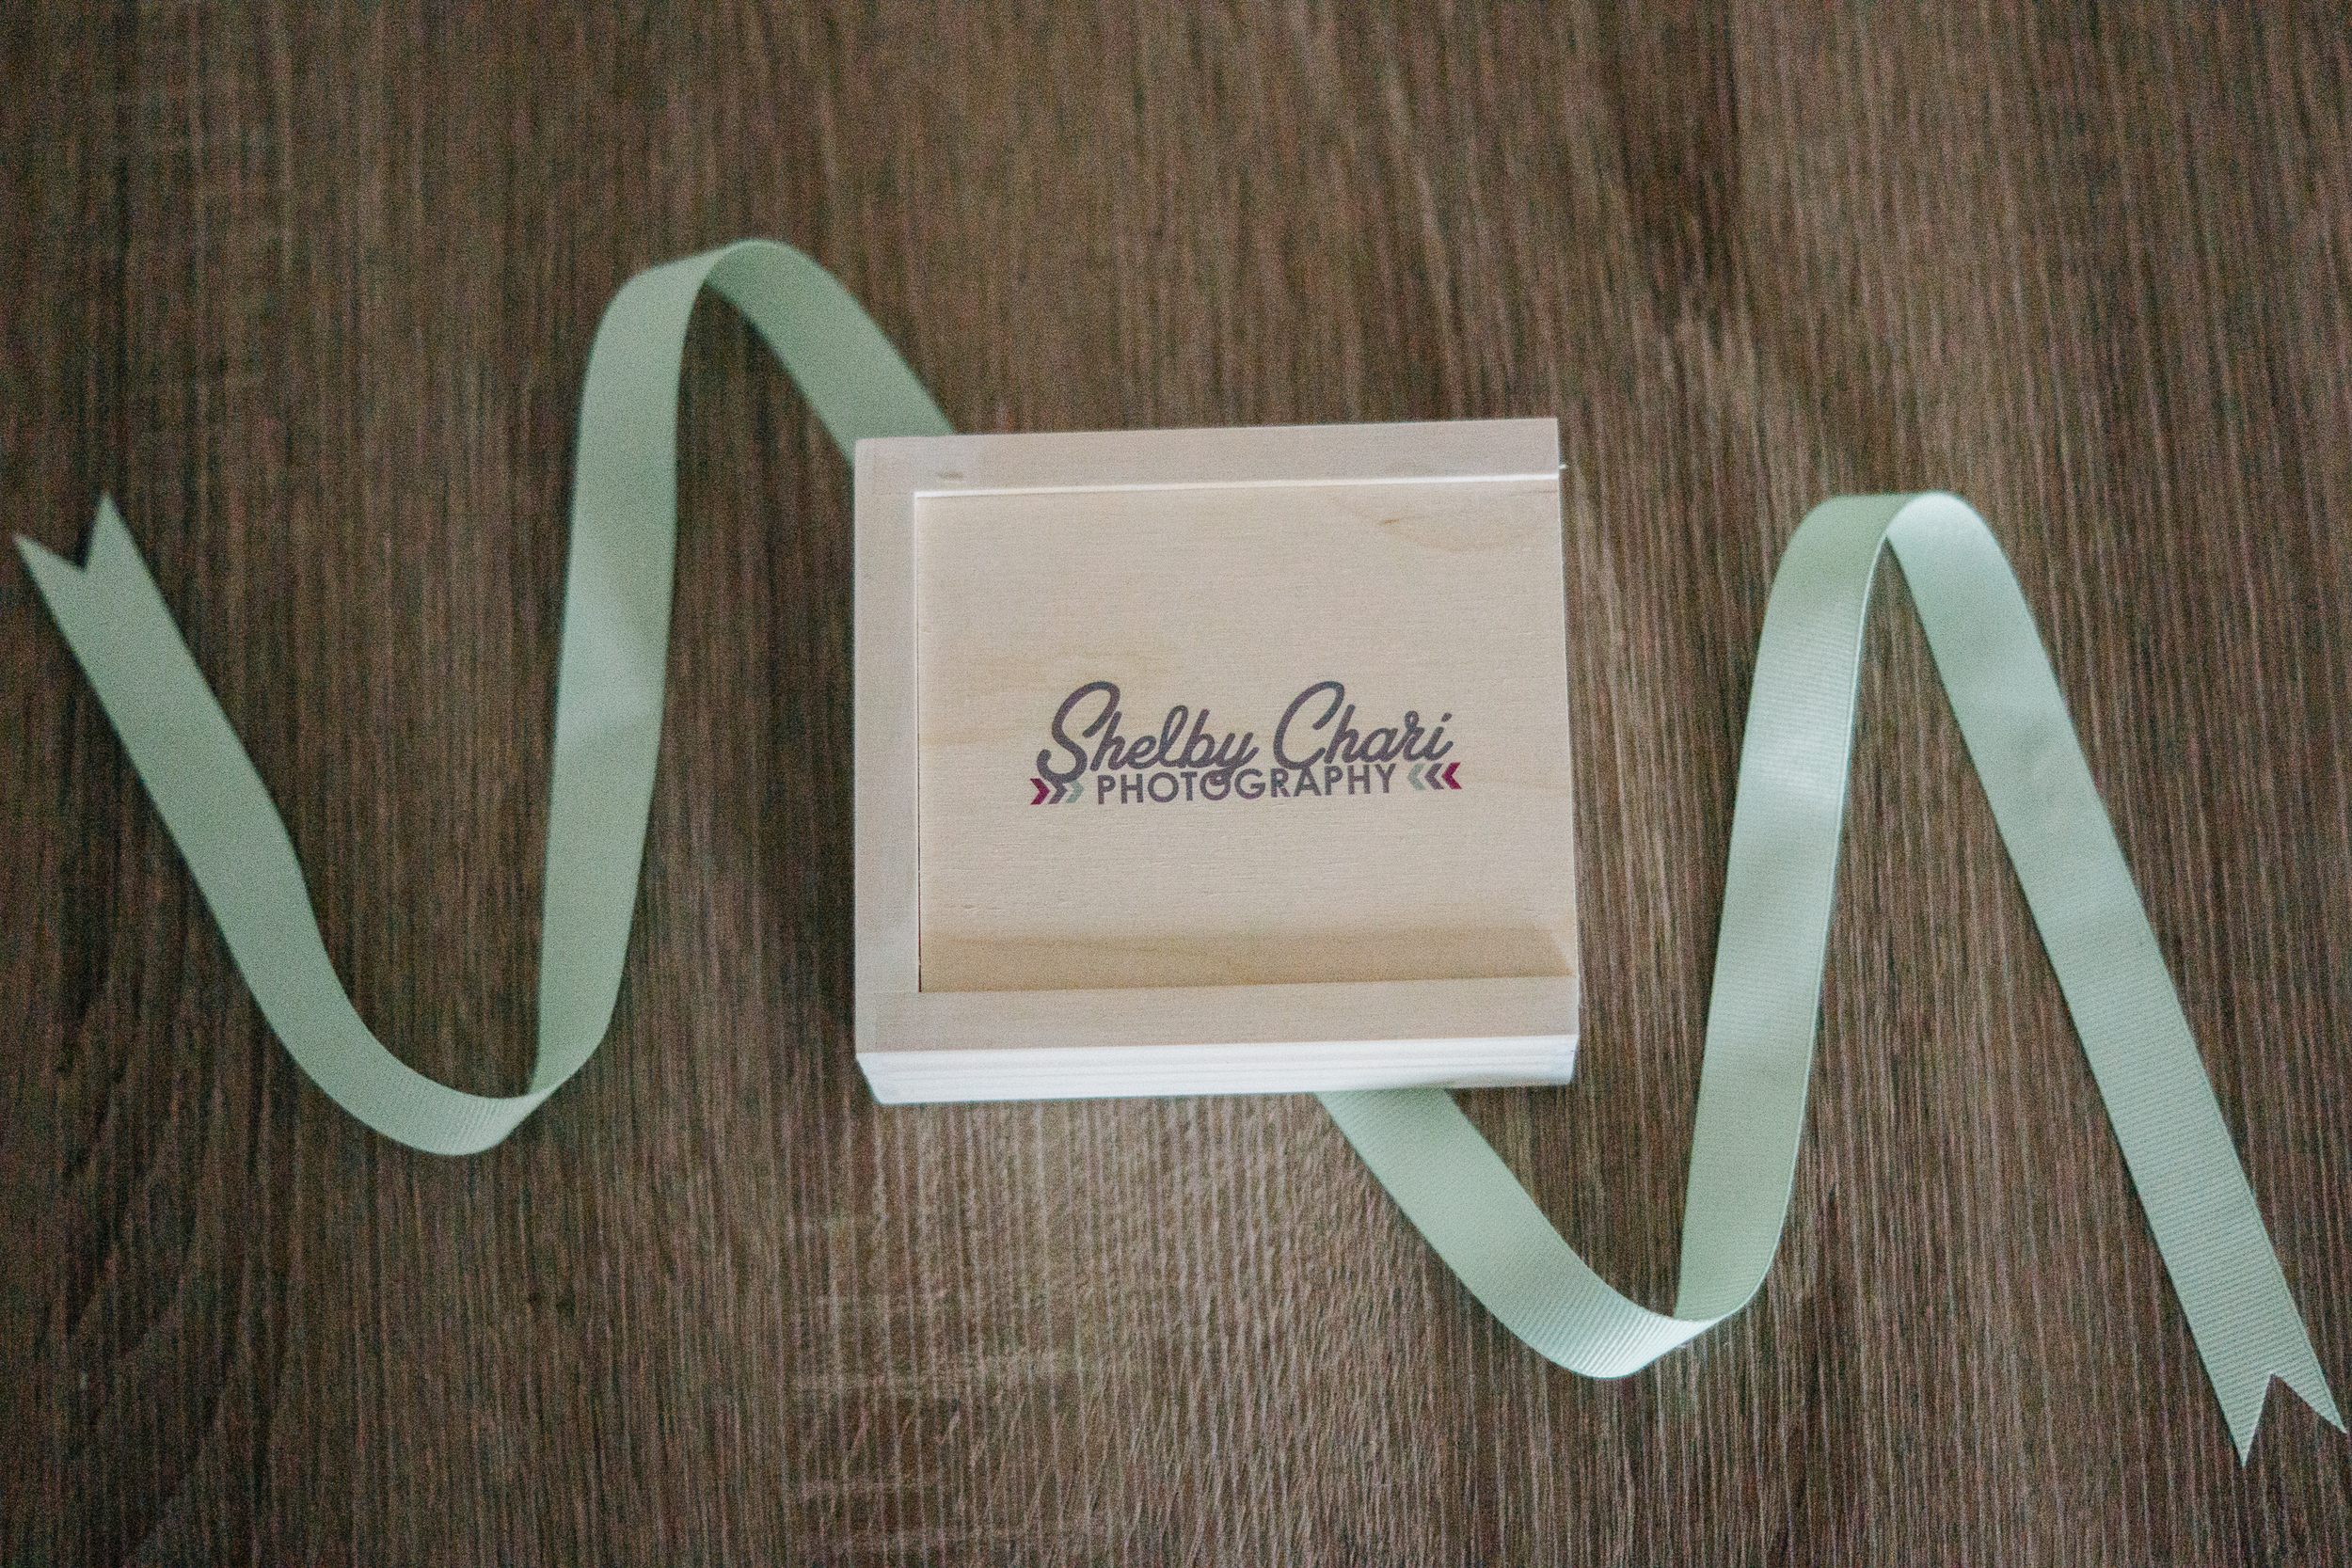 Shelby Chari Photography | South Bend Wedding Photography | Flash Drive Packaging